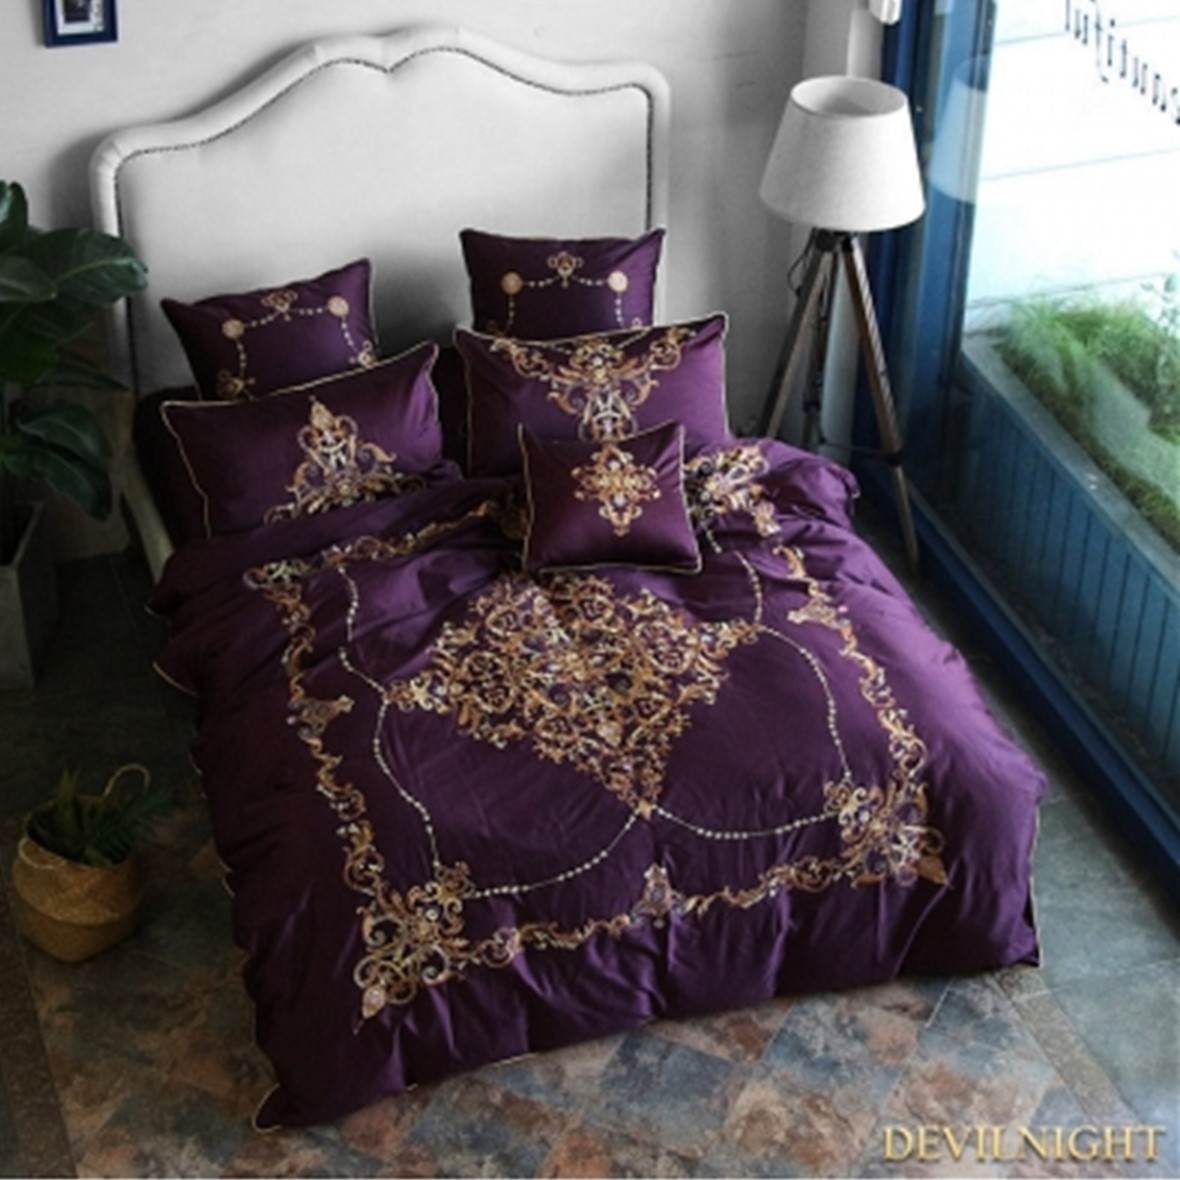 ◆DevilNight◆PURPLE GOTHIC VINTAGE PALACE EMBROIDERY 2 - 6p